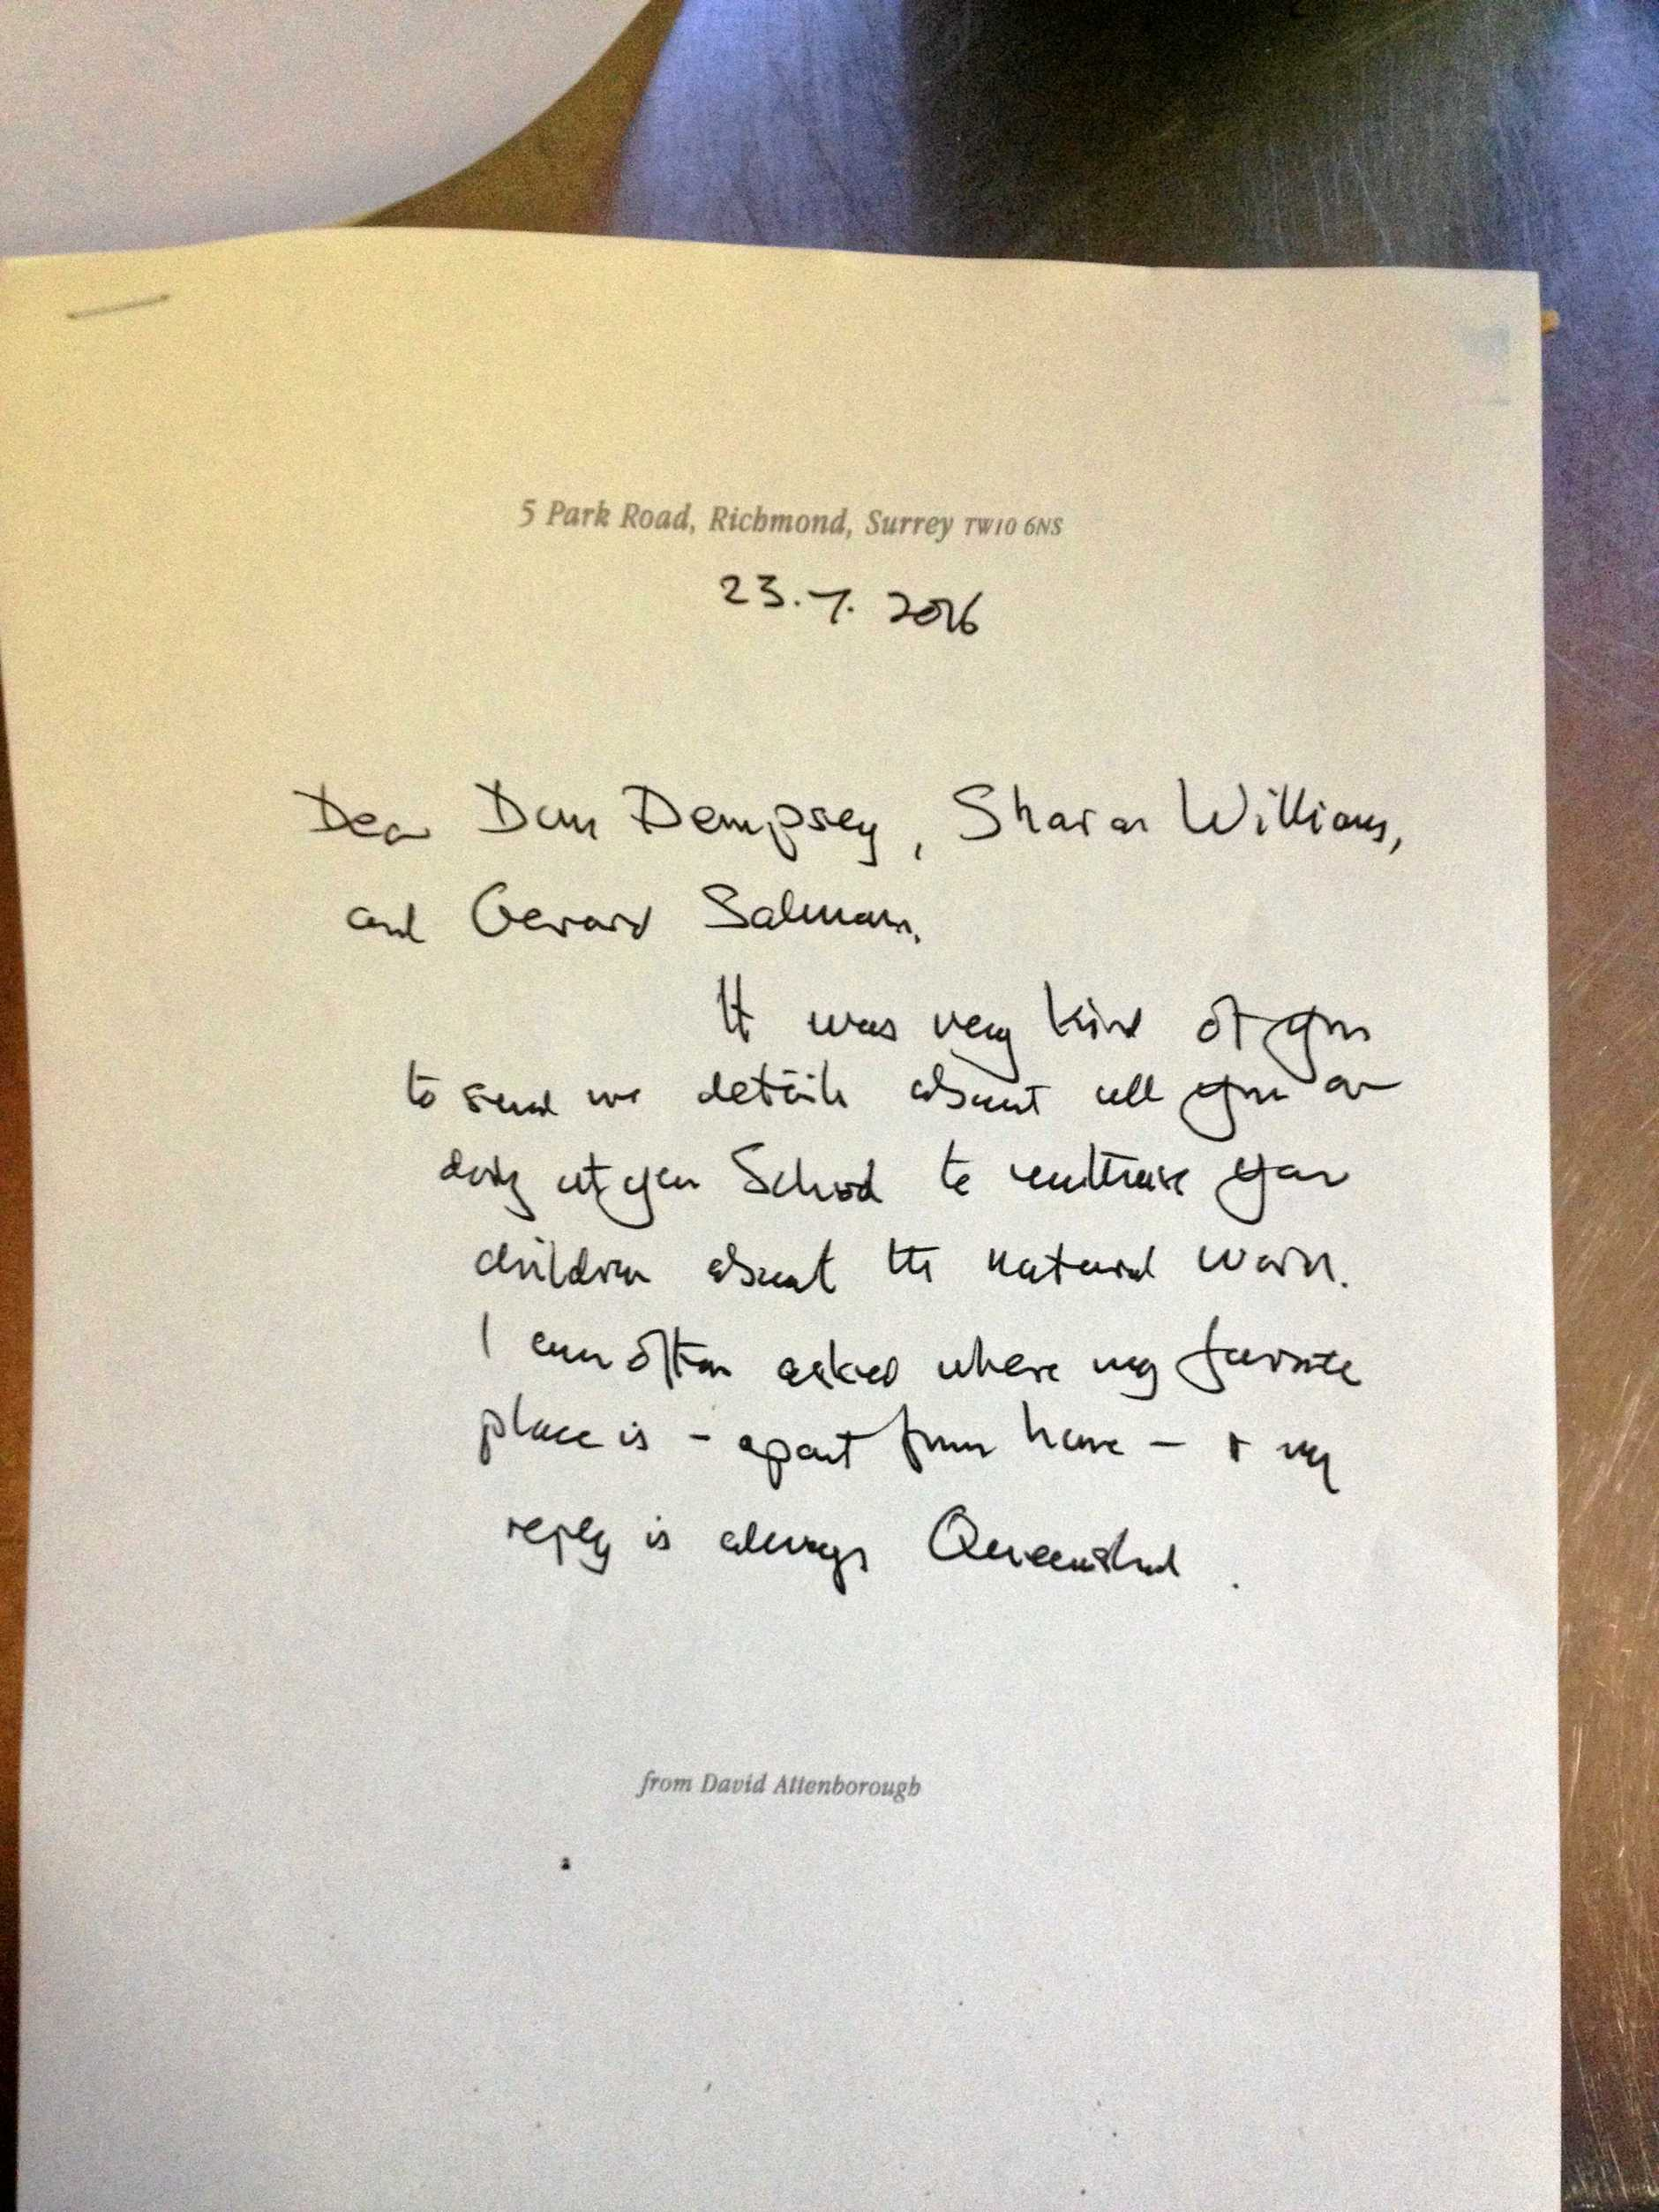 Sir David Attenborough wrote a hand-written letter to Goodna State School.